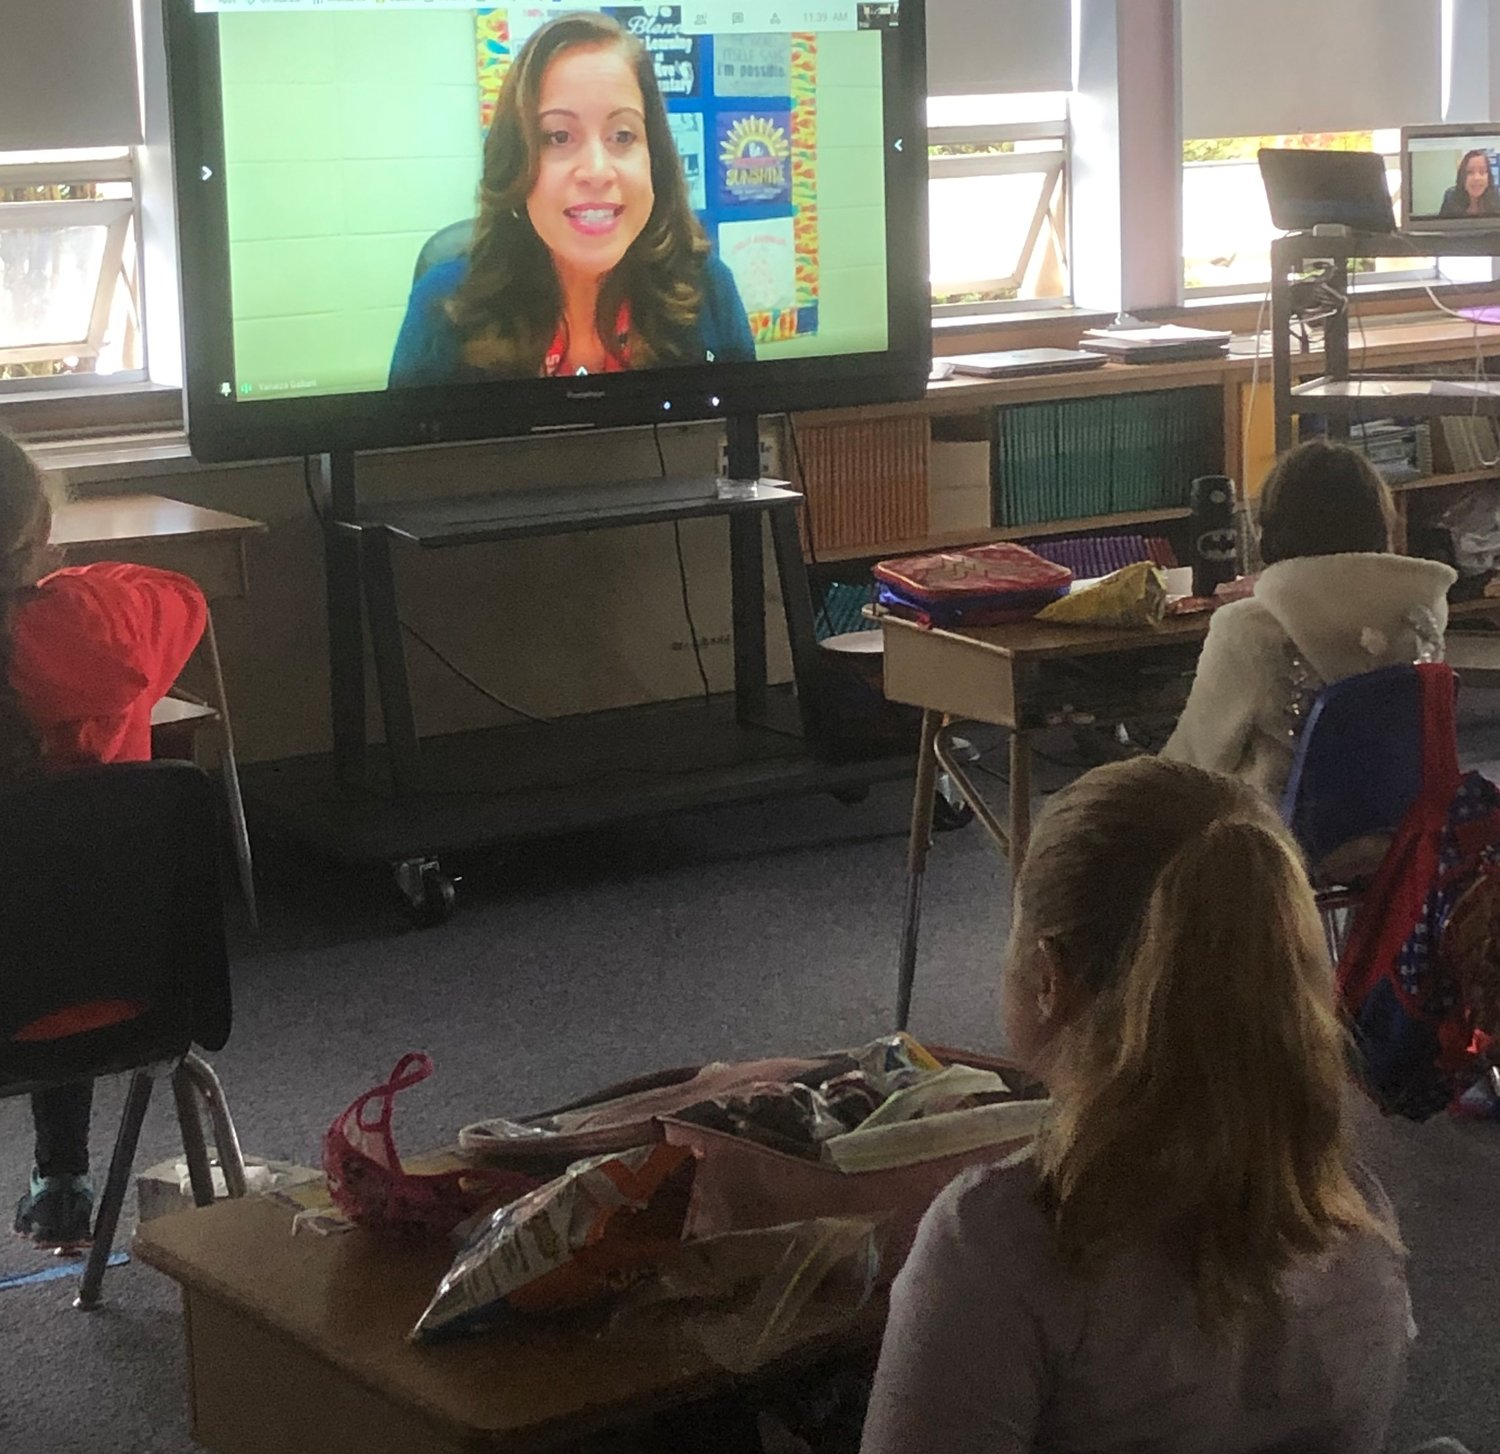 Mrs. Ruthven and Mrs. Caverly at Orlo Avenue have invited surprise guest readers virtually to their 2nd grade classroom during their Tuesday's lunch.  So far this year their classmate's parent read a great story, Mrs. Lodge read a story and taught the kids how to spin and weave, Mrs. Gallant, Multi Language Learner Director for the city, joined us and read a book about inclusivity and being kind to others.  They have loved their surprise Tuesday readers and can't wait to see who joins next.